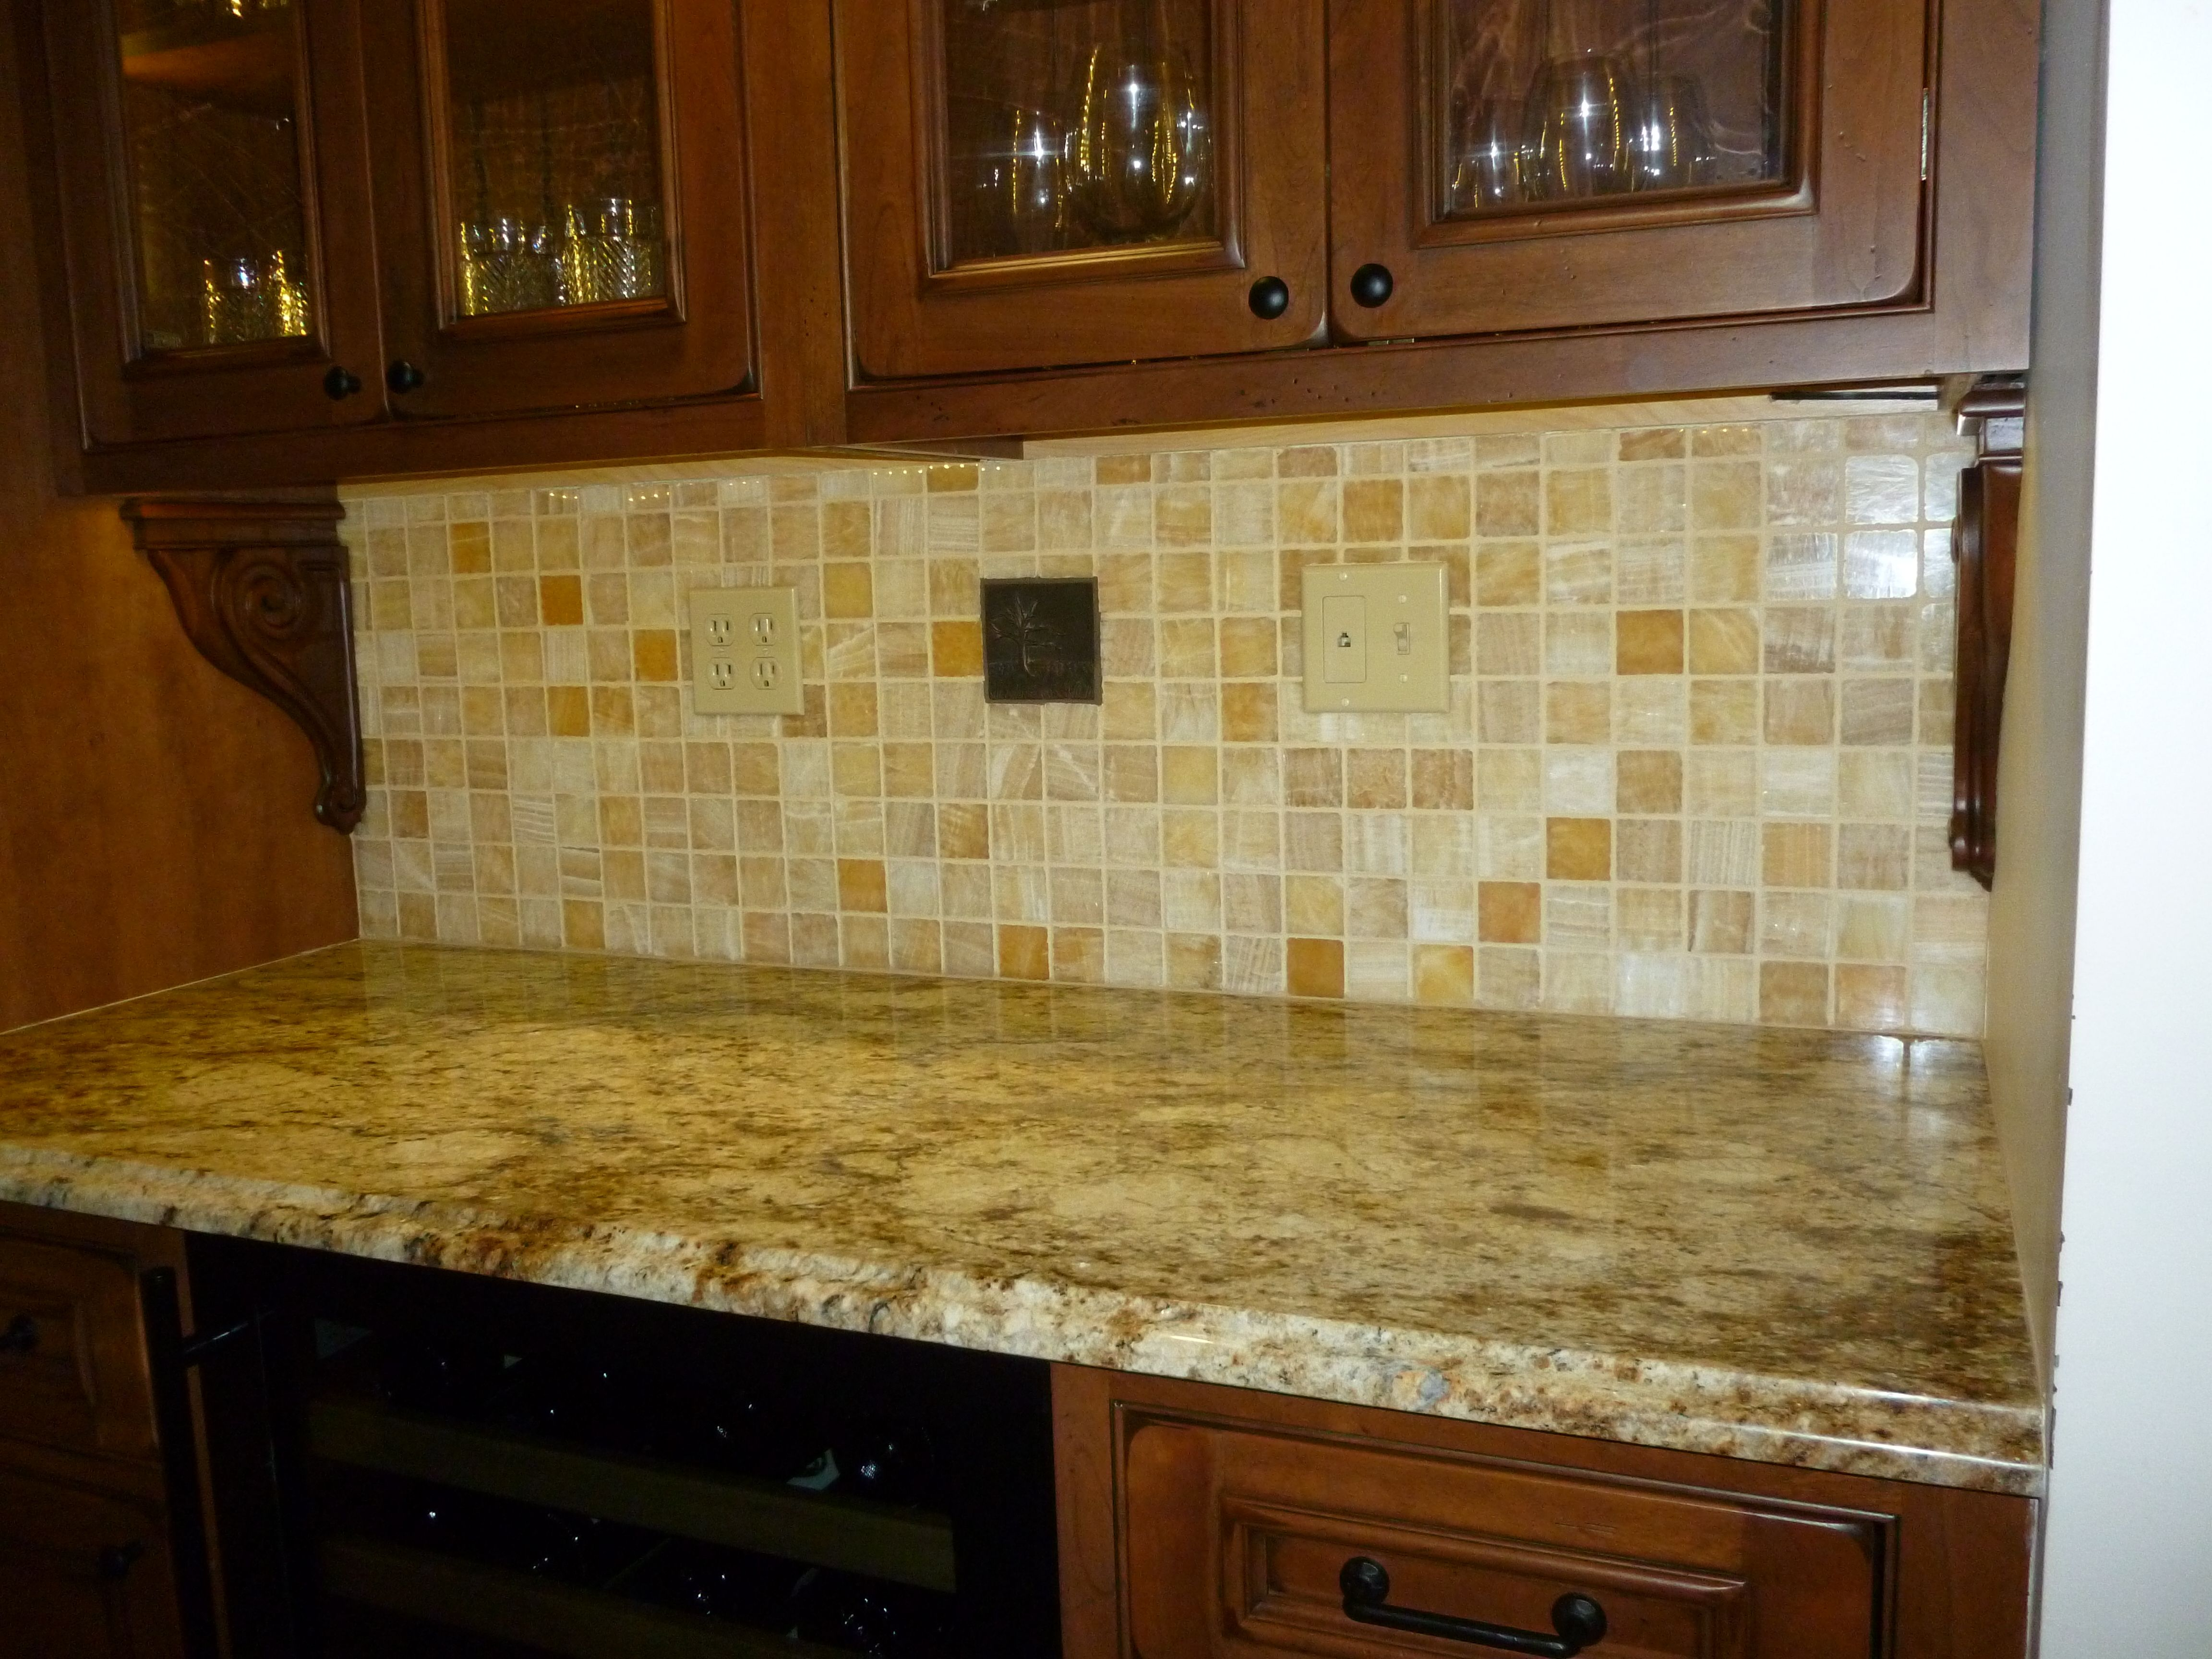 tiles to match yellow river granite - Google Search   Home ...